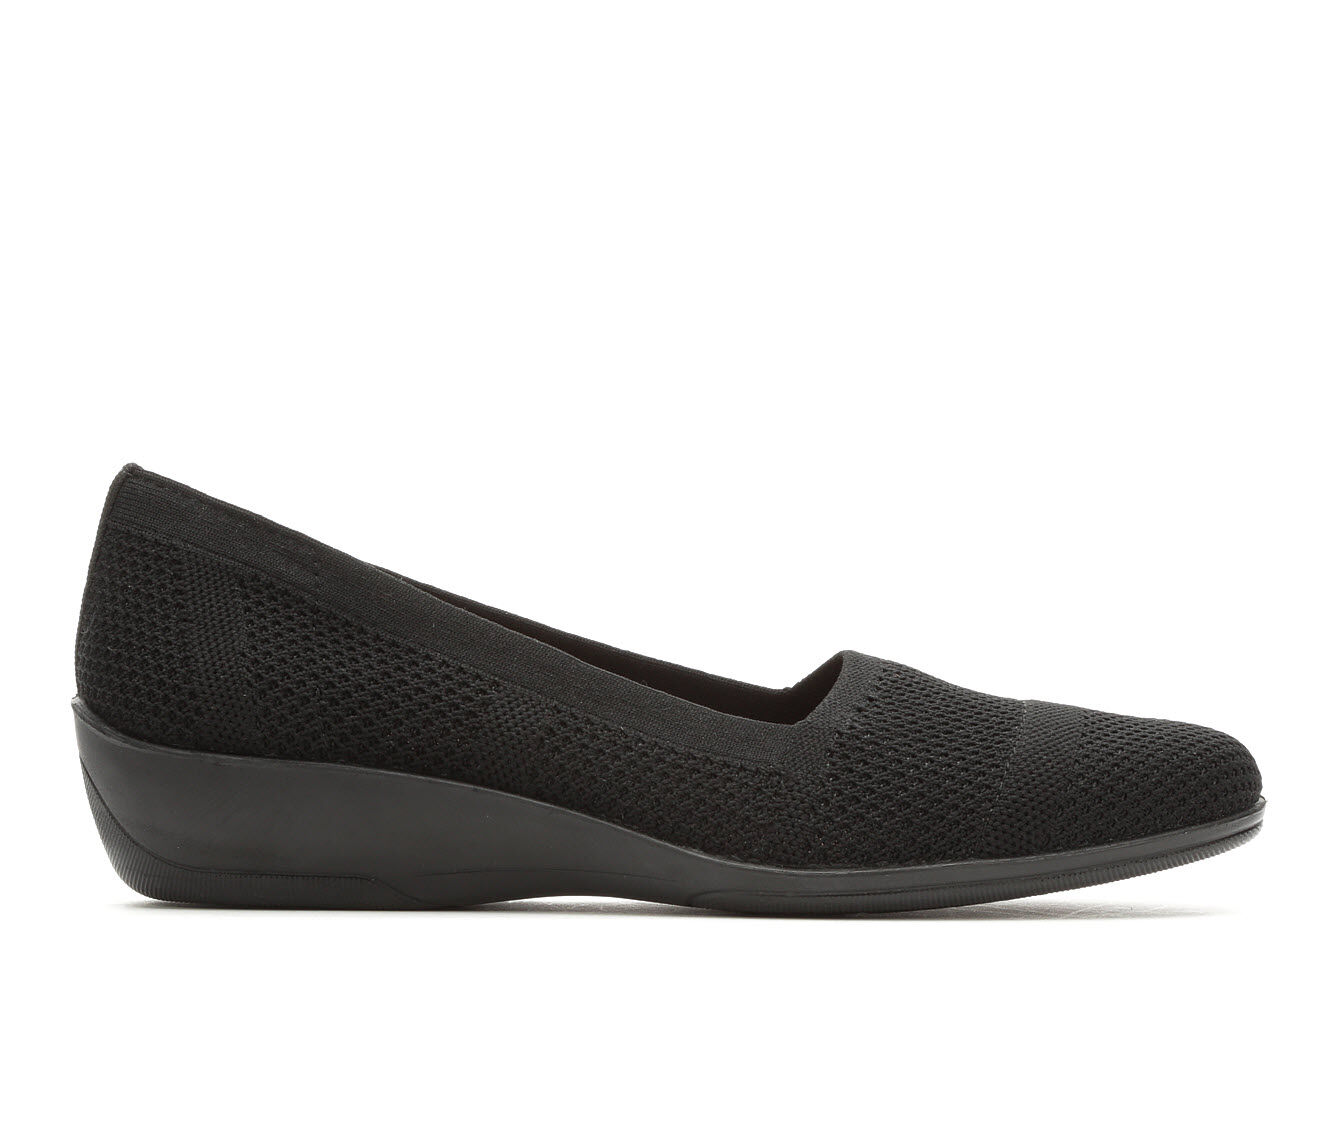 Women's LifeStride Immy Shoes Black